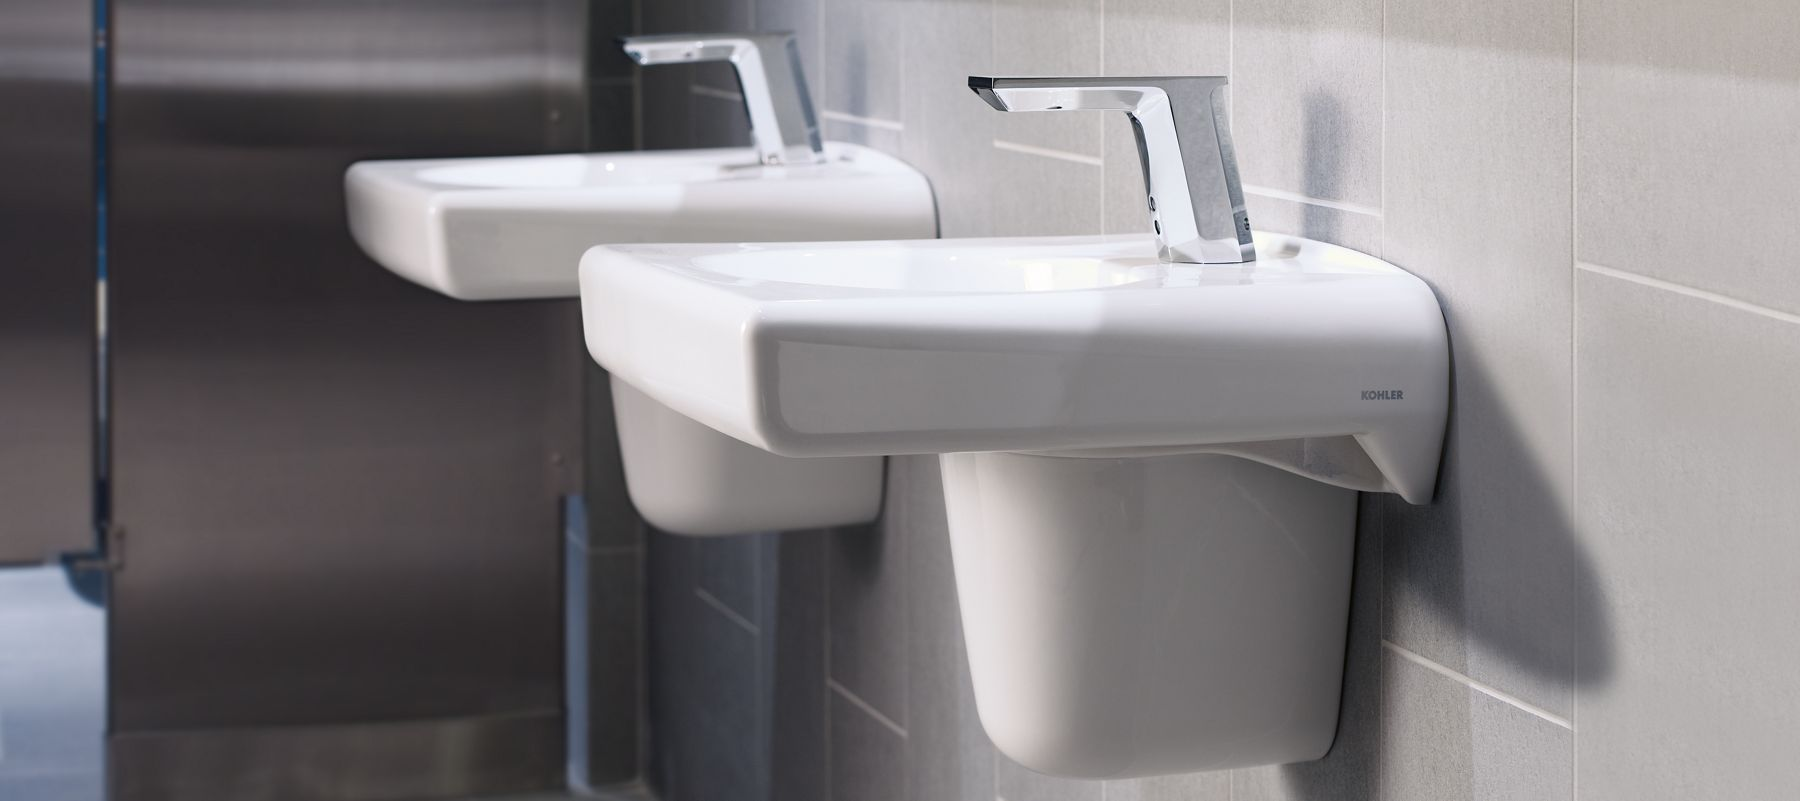 commercial products - Commercial Bathroom